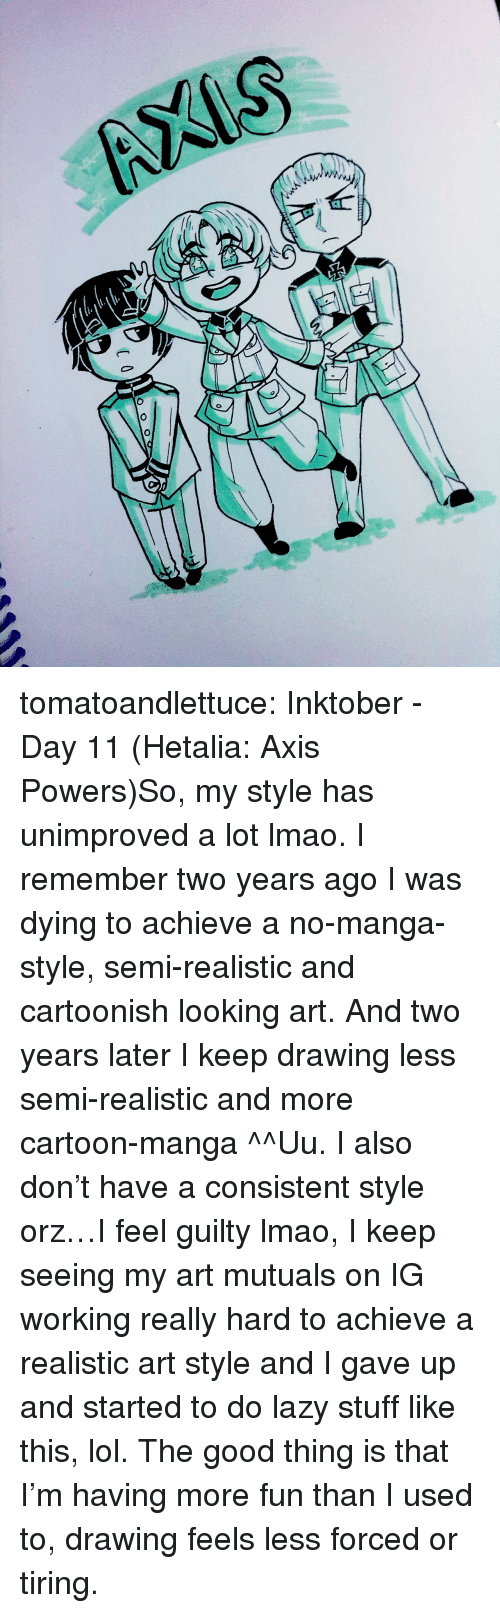 Art Style: tomatoandlettuce:    Inktober - Day 11 (Hetalia: Axis Powers)So, my style has unimproved a lot lmao. I remember two years ago I was dying to achieve a no-manga-style, semi-realistic and cartoonish looking art. And two years later I keep drawing less semi-realistic and more cartoon-manga ^^Uu. I also don't have a consistent style orz…I feel guilty lmao, I keep seeing my art mutuals on IG working really hard to achieve a realistic art style and I gave up and started to do lazy stuff like this, lol. The good thing is that I'm having more fun than I used to, drawing feels less forced or tiring.